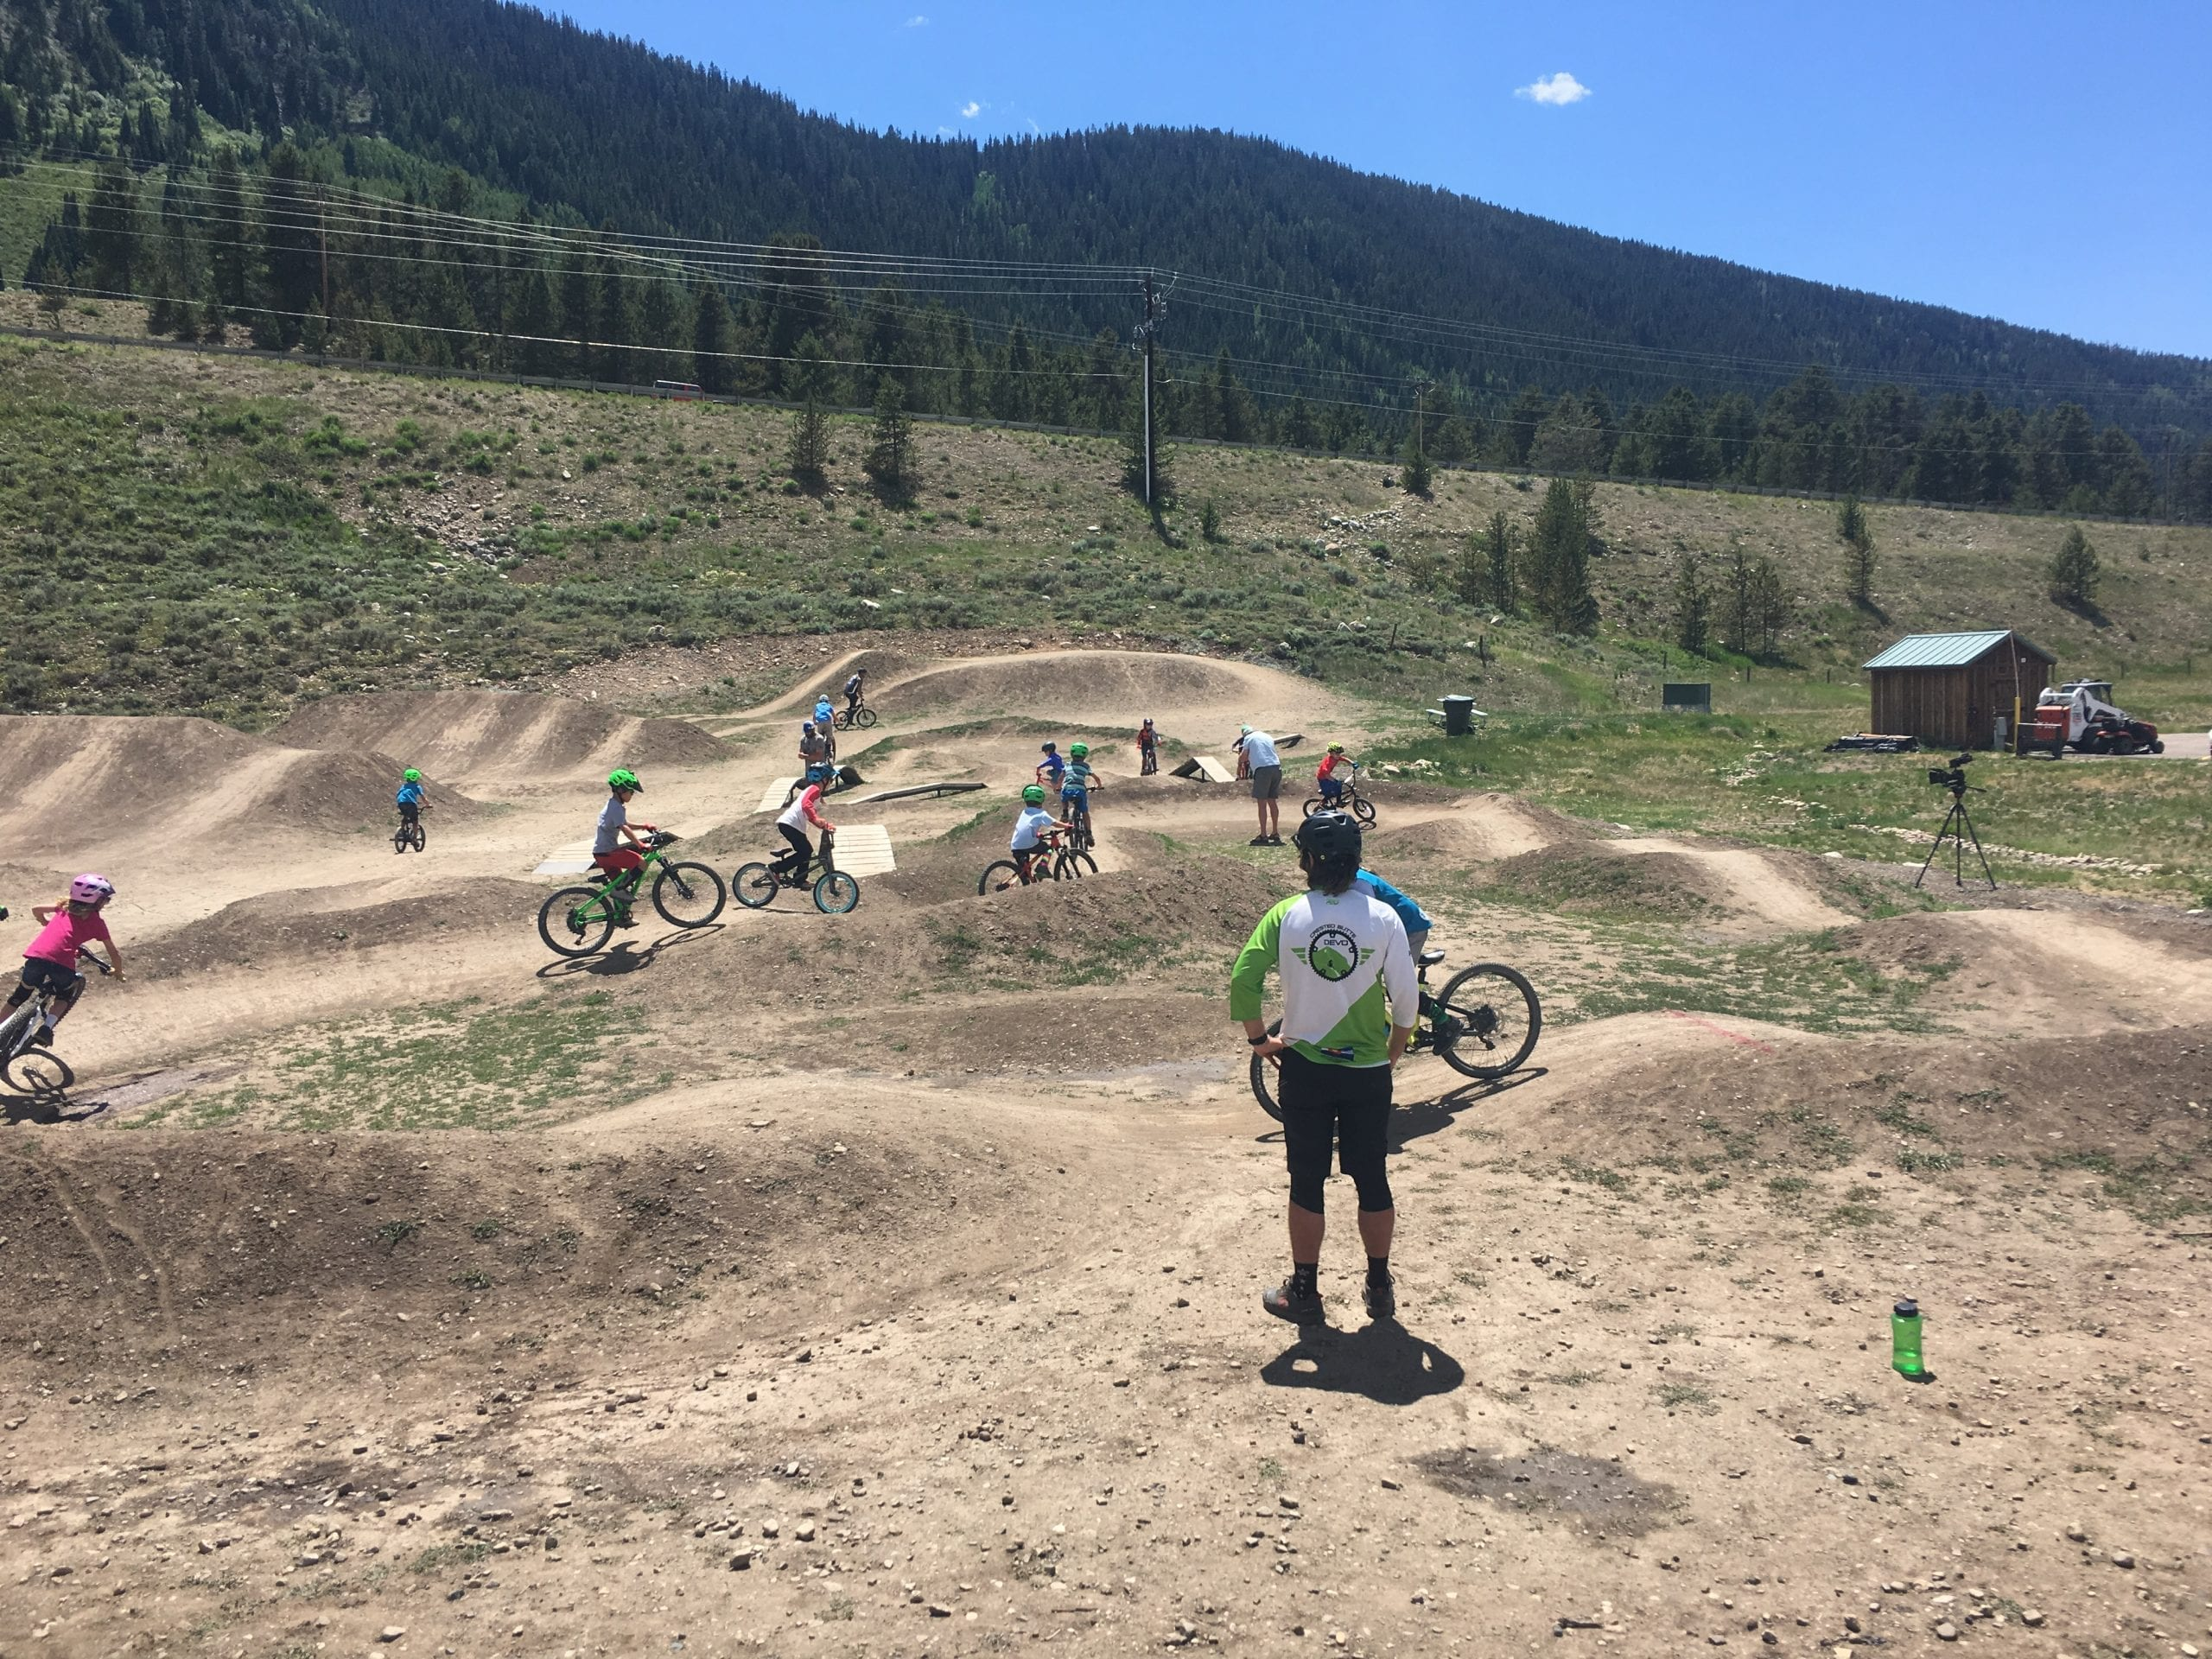 a6f9a65162f Join CB Devo, CBMBA, the CB Conservation Corp, and Crested Butte Parks and  Rec for a Bike Park work day Wednesday, June 5th from 3:00-6:00pm at the  Crested ...